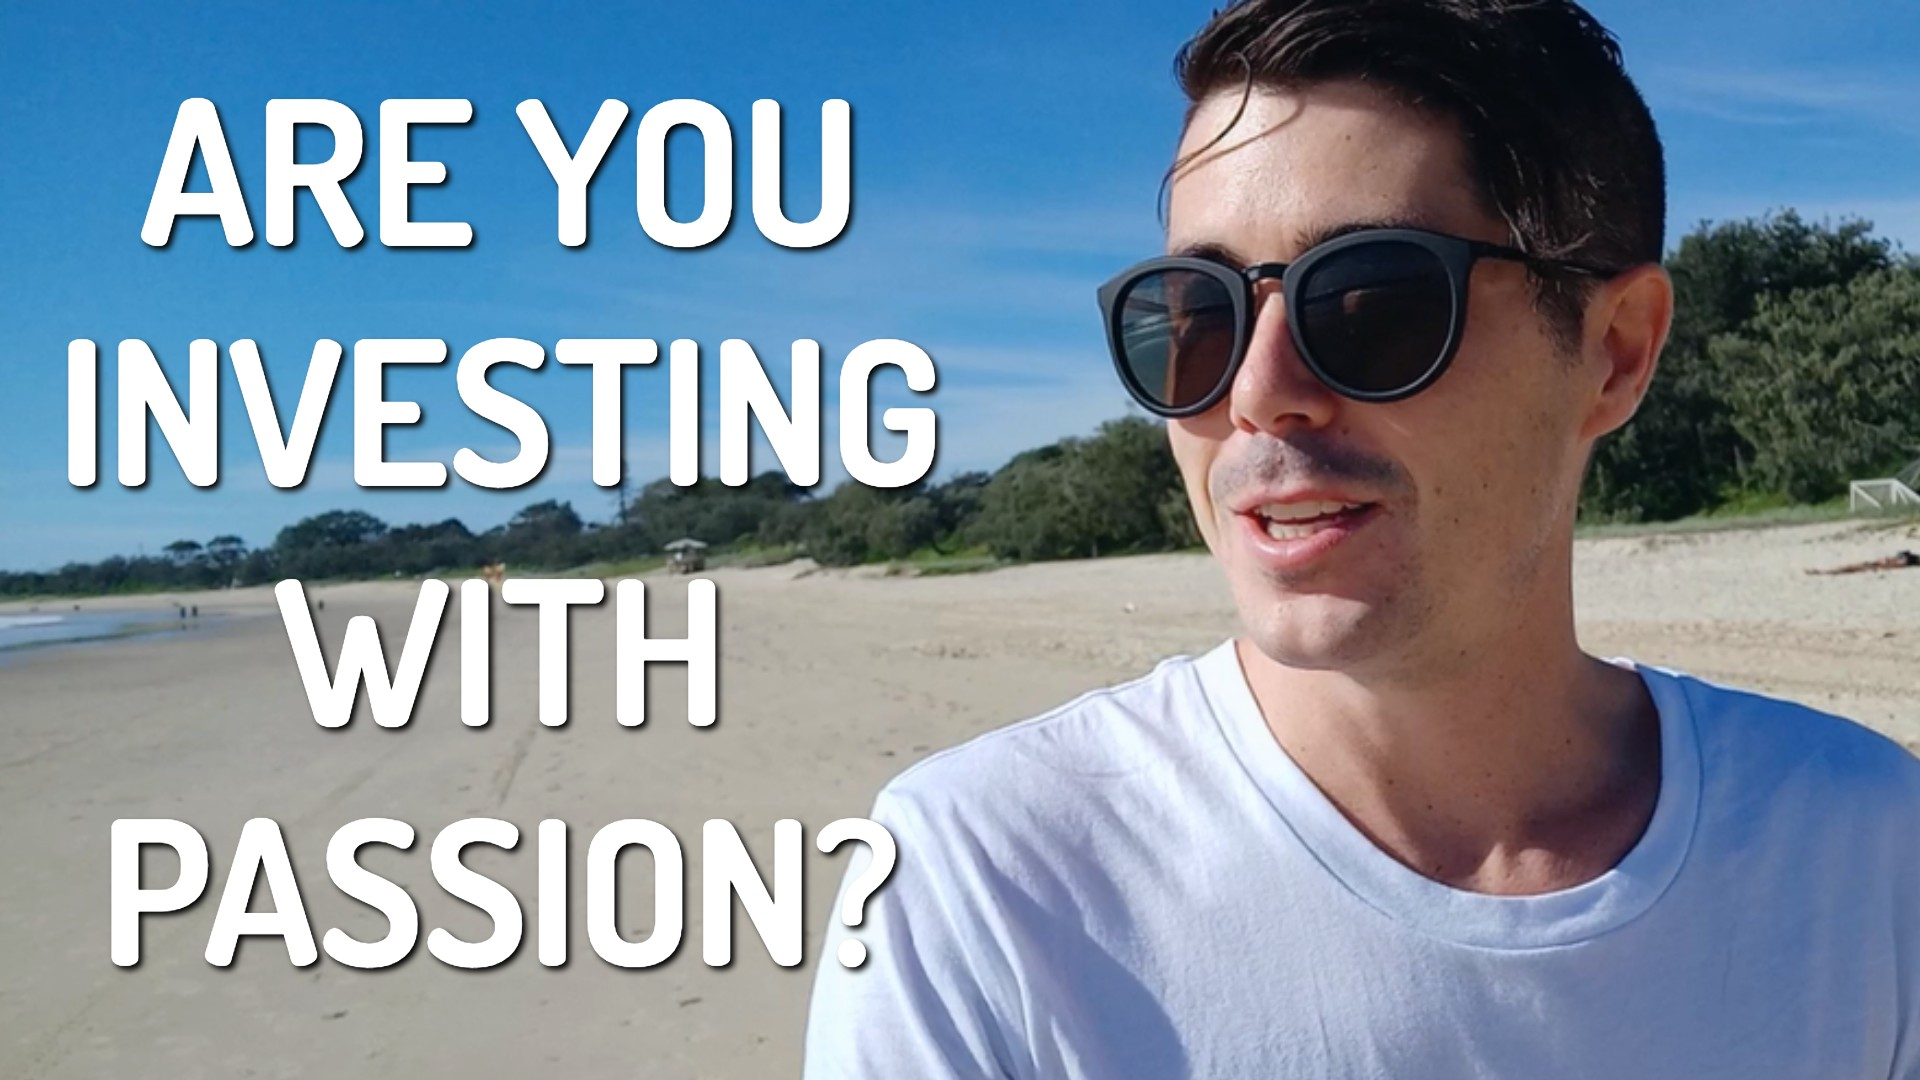 Are You Investing With Passion?